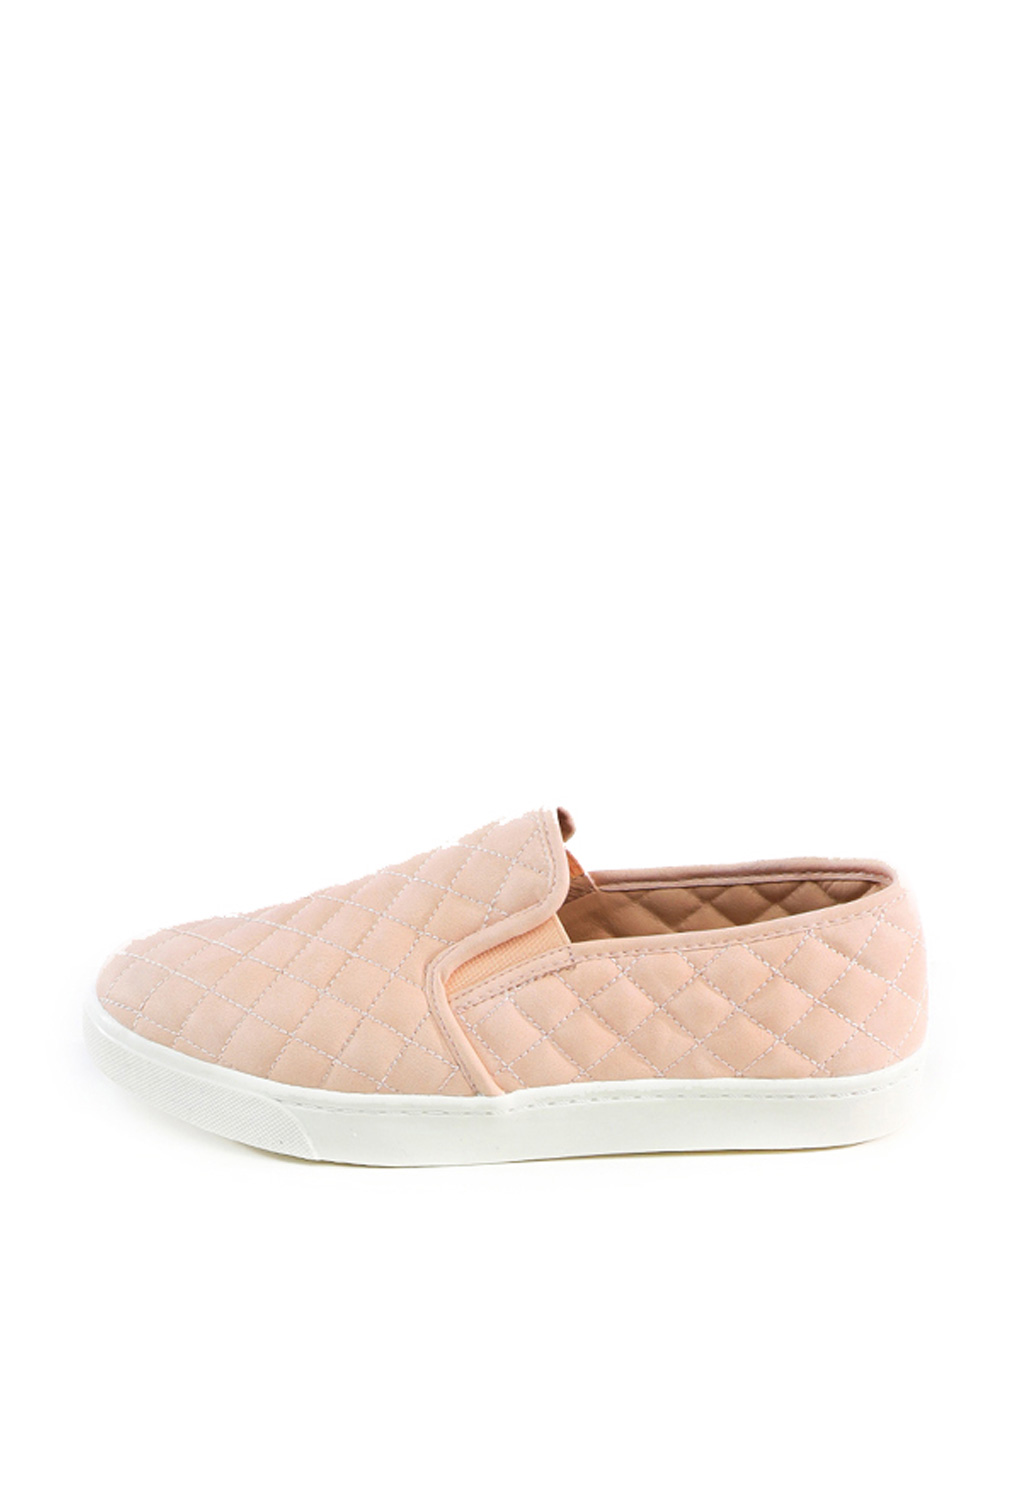 Eccentric Slip-On Sneakers